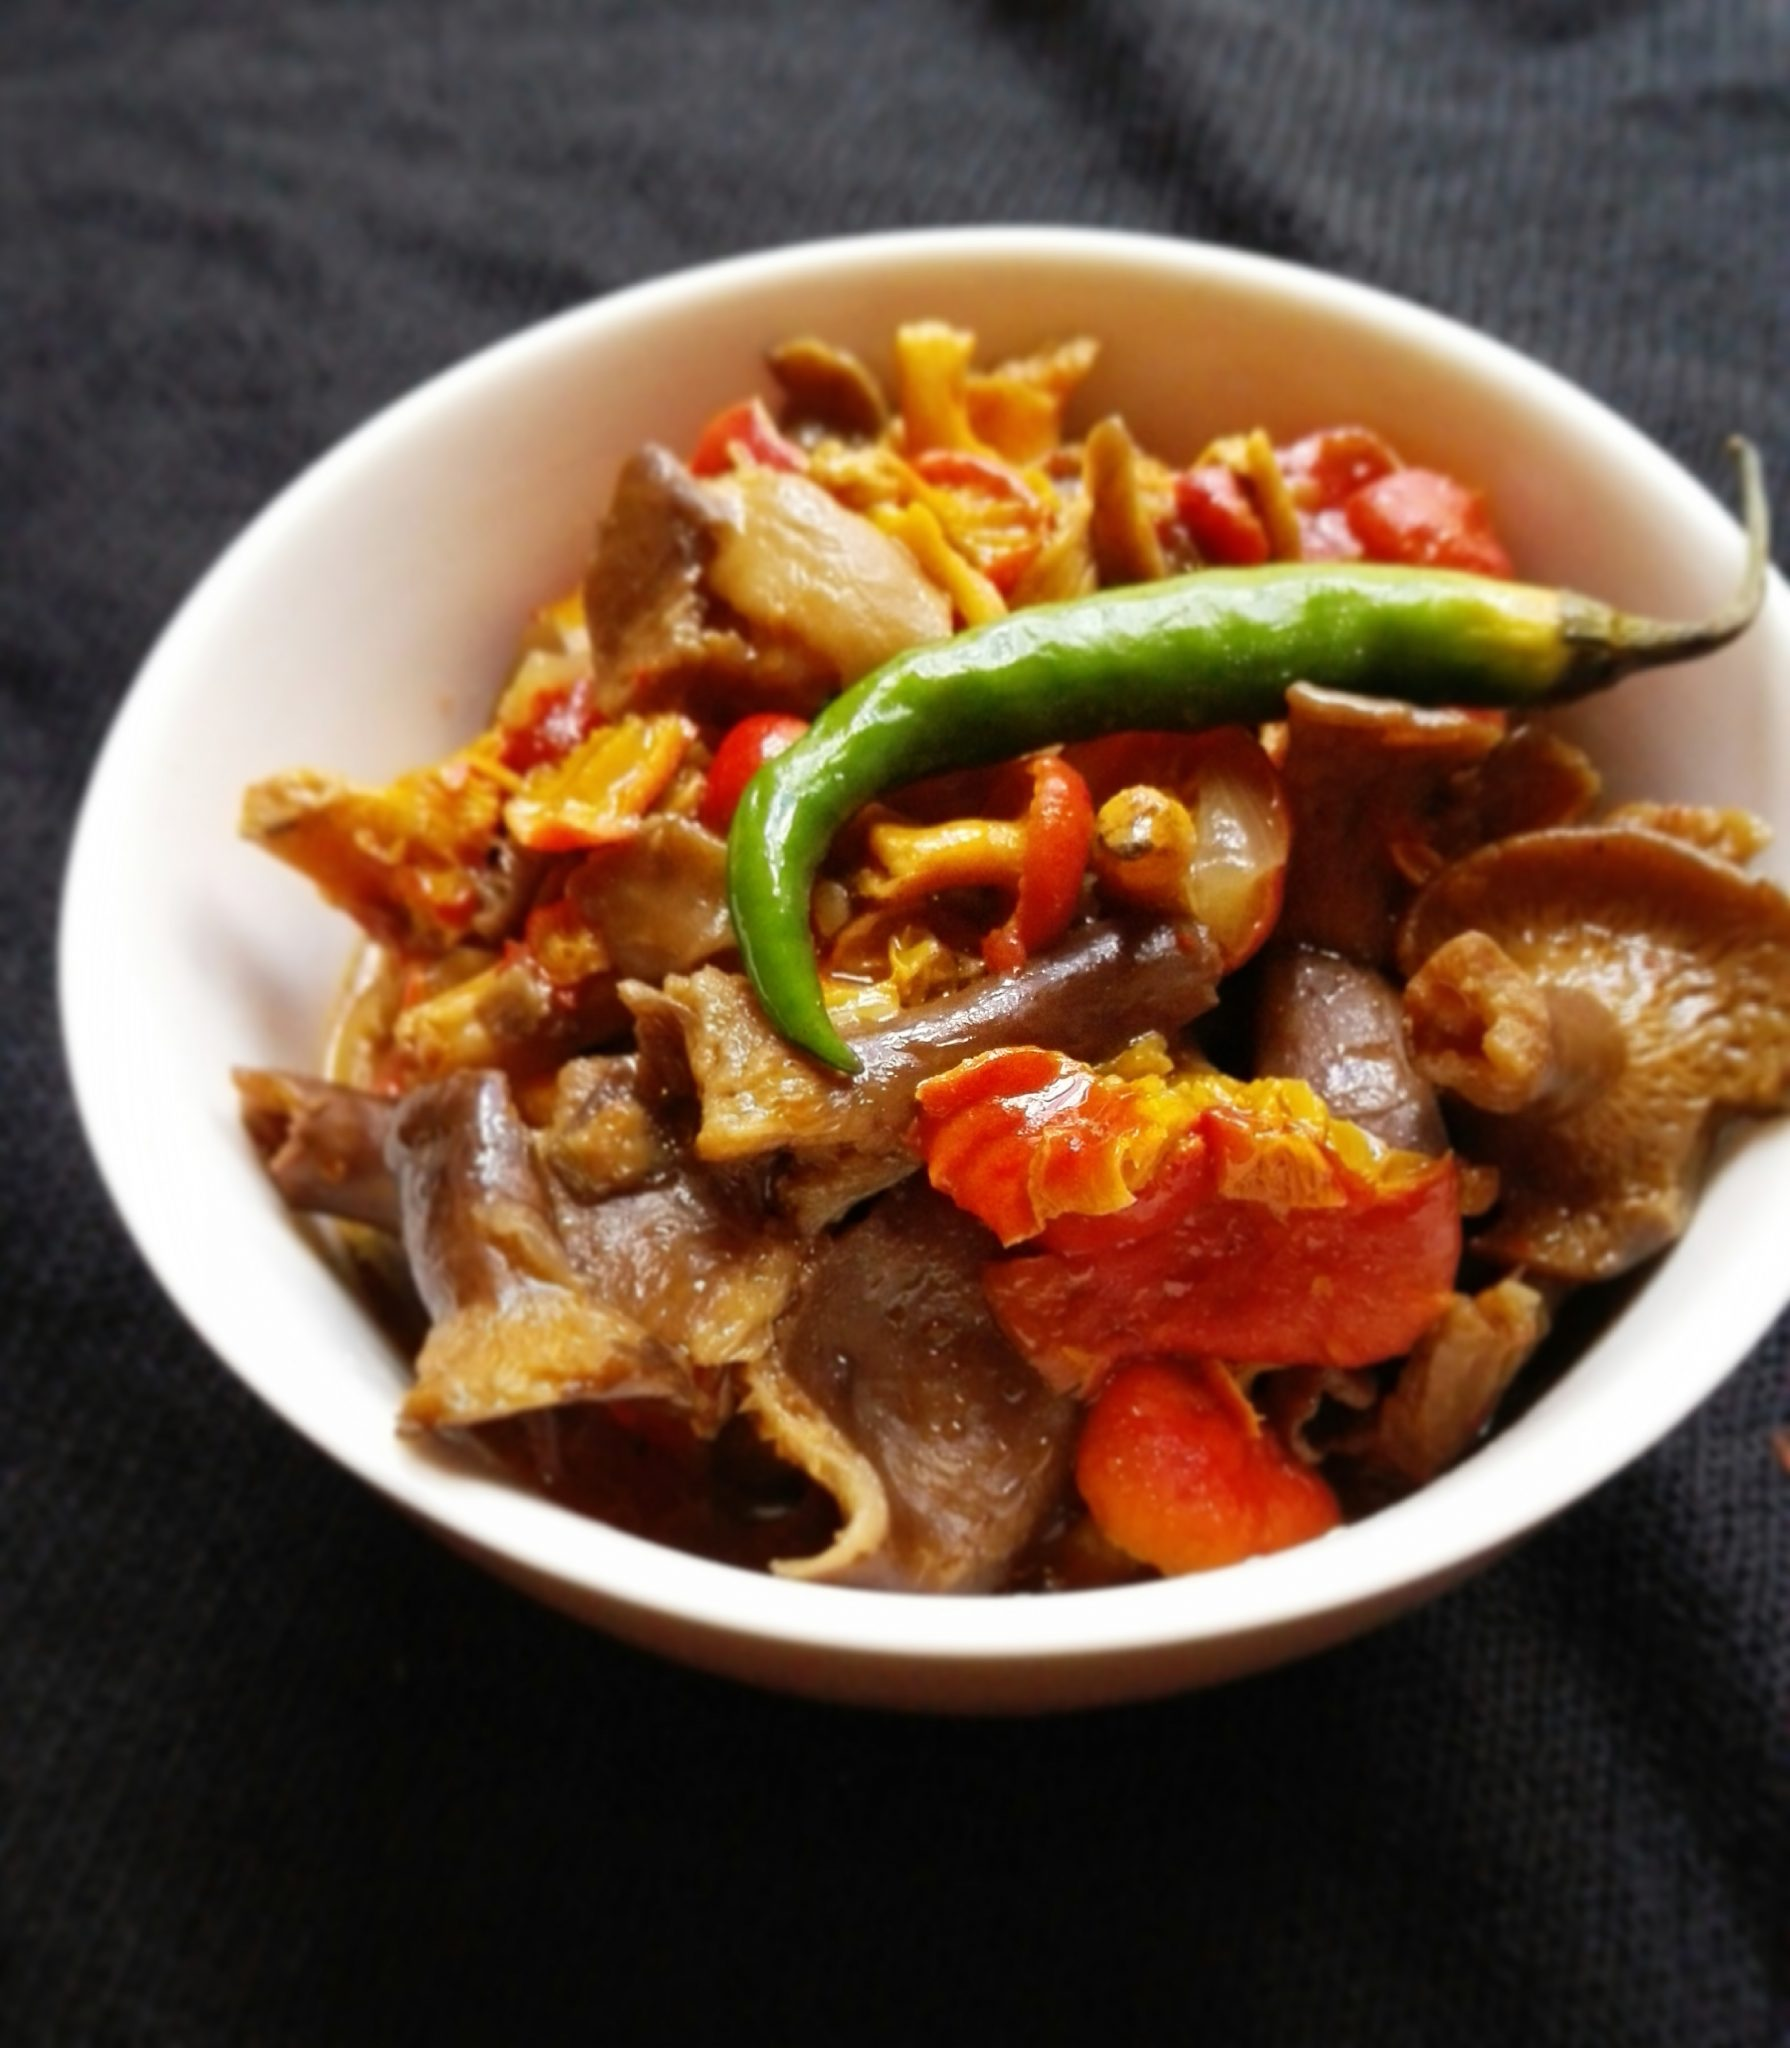 ZAMBIAN FOOD: RED BROWN MUSHROOM RECIPE